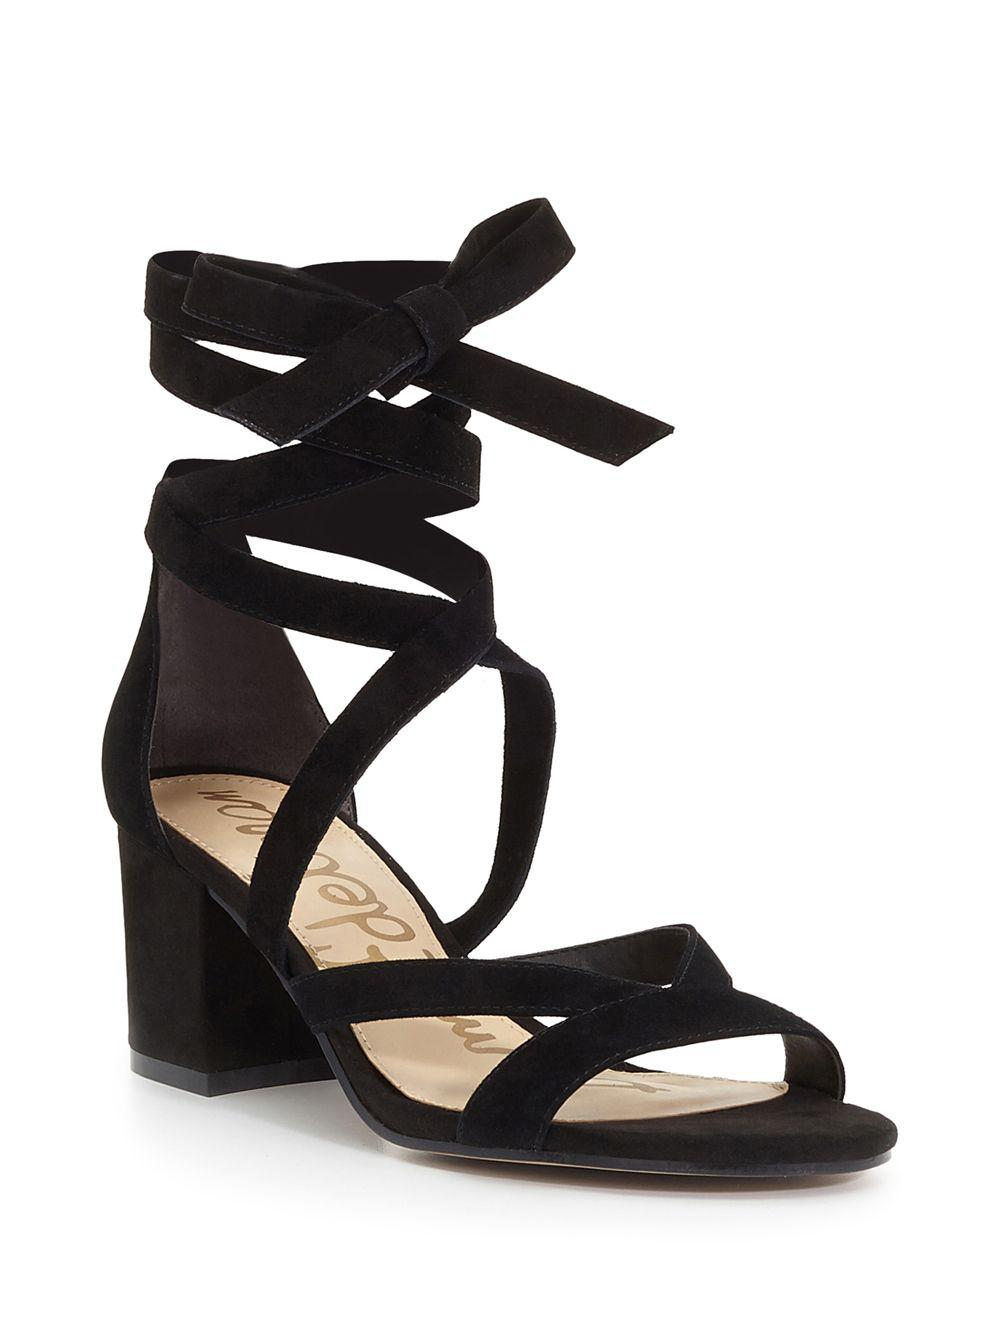 daf5509decb Lyst - Sam Edelman Sheri Suede Block Heel Sandals in Black